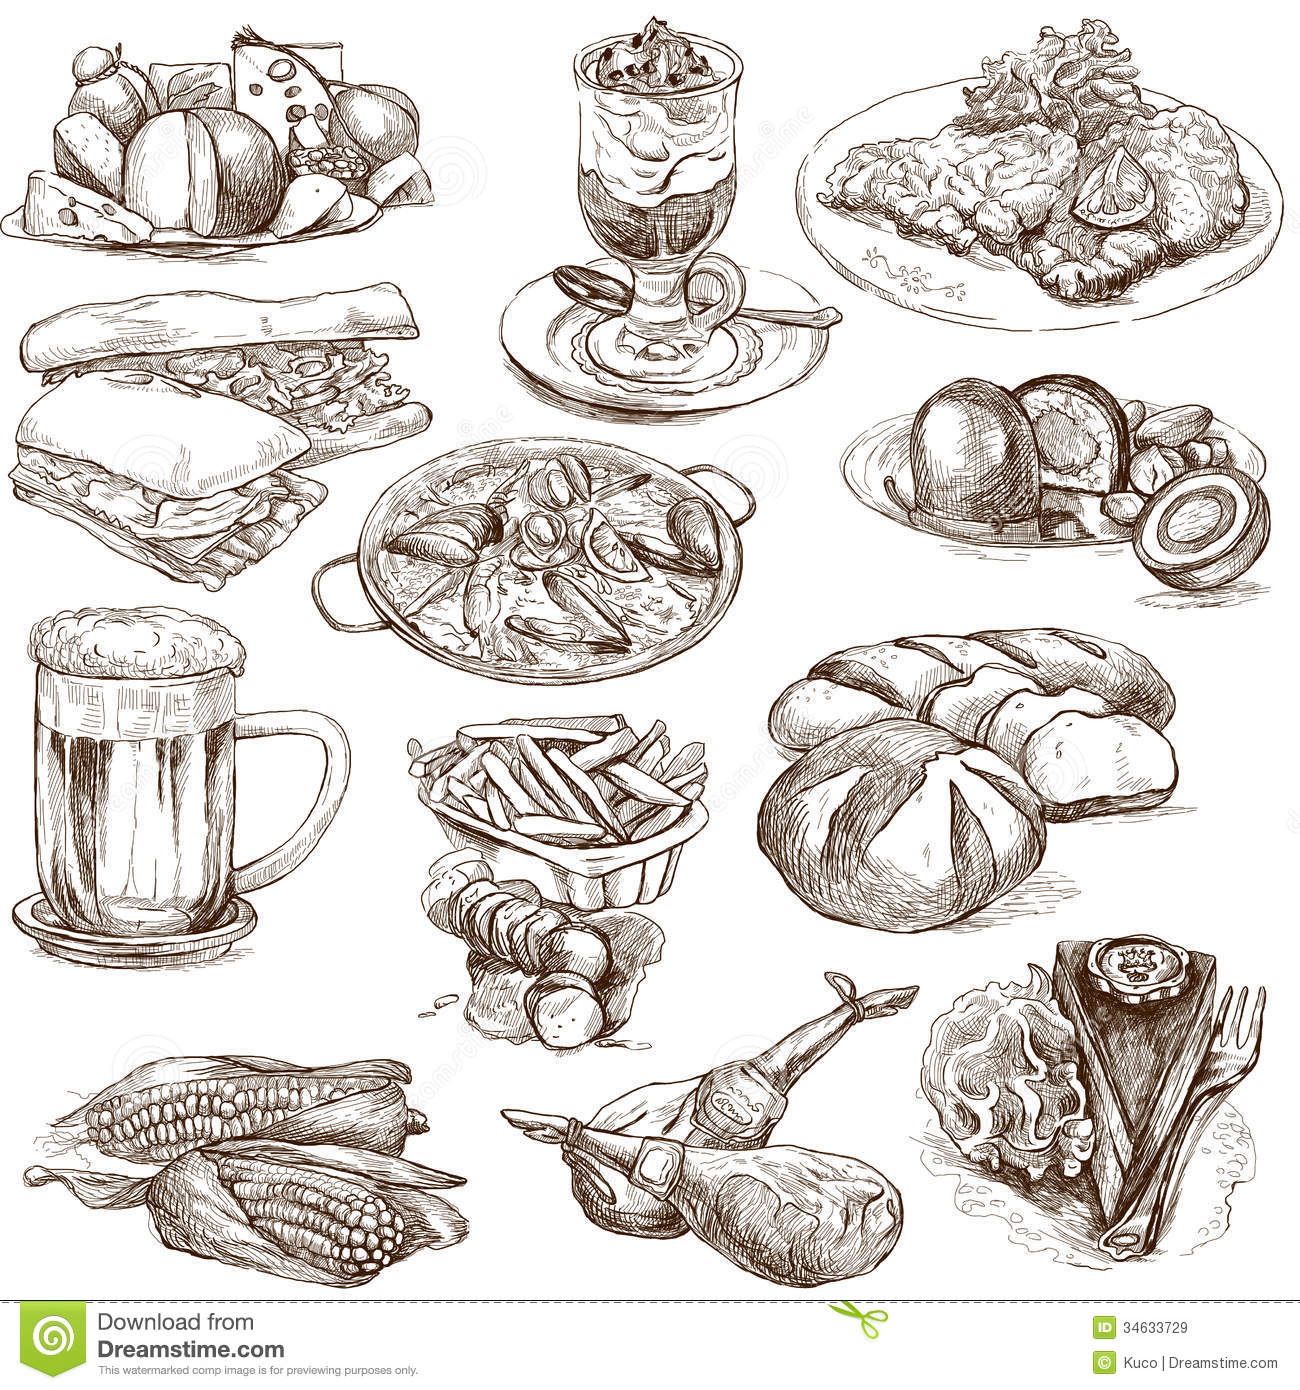 Drawn food Sized description full illustrations white